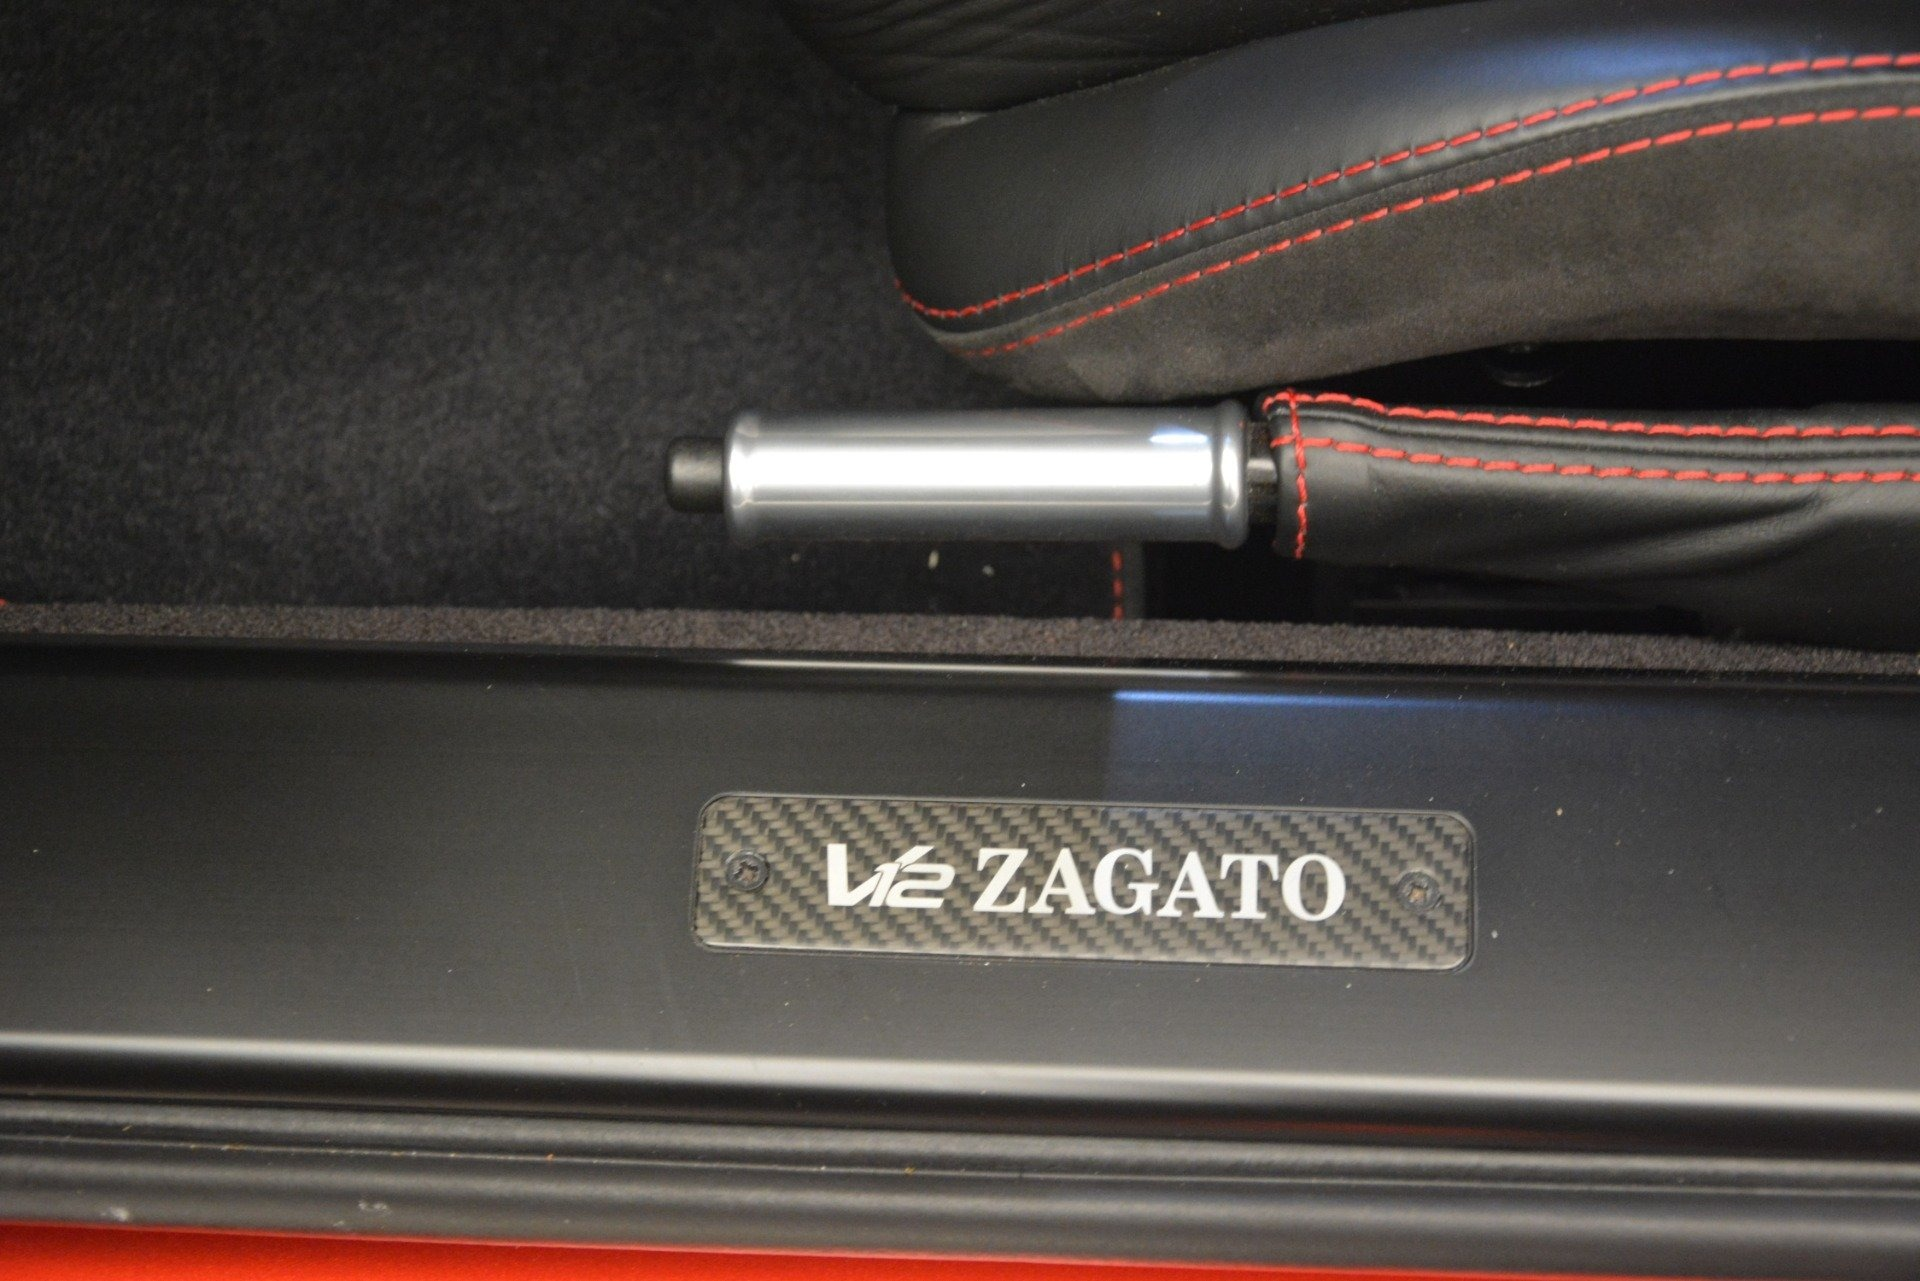 Used 2013 Aston Martin V12 Zagato Coupe For Sale In Westport, CT 3181_p16